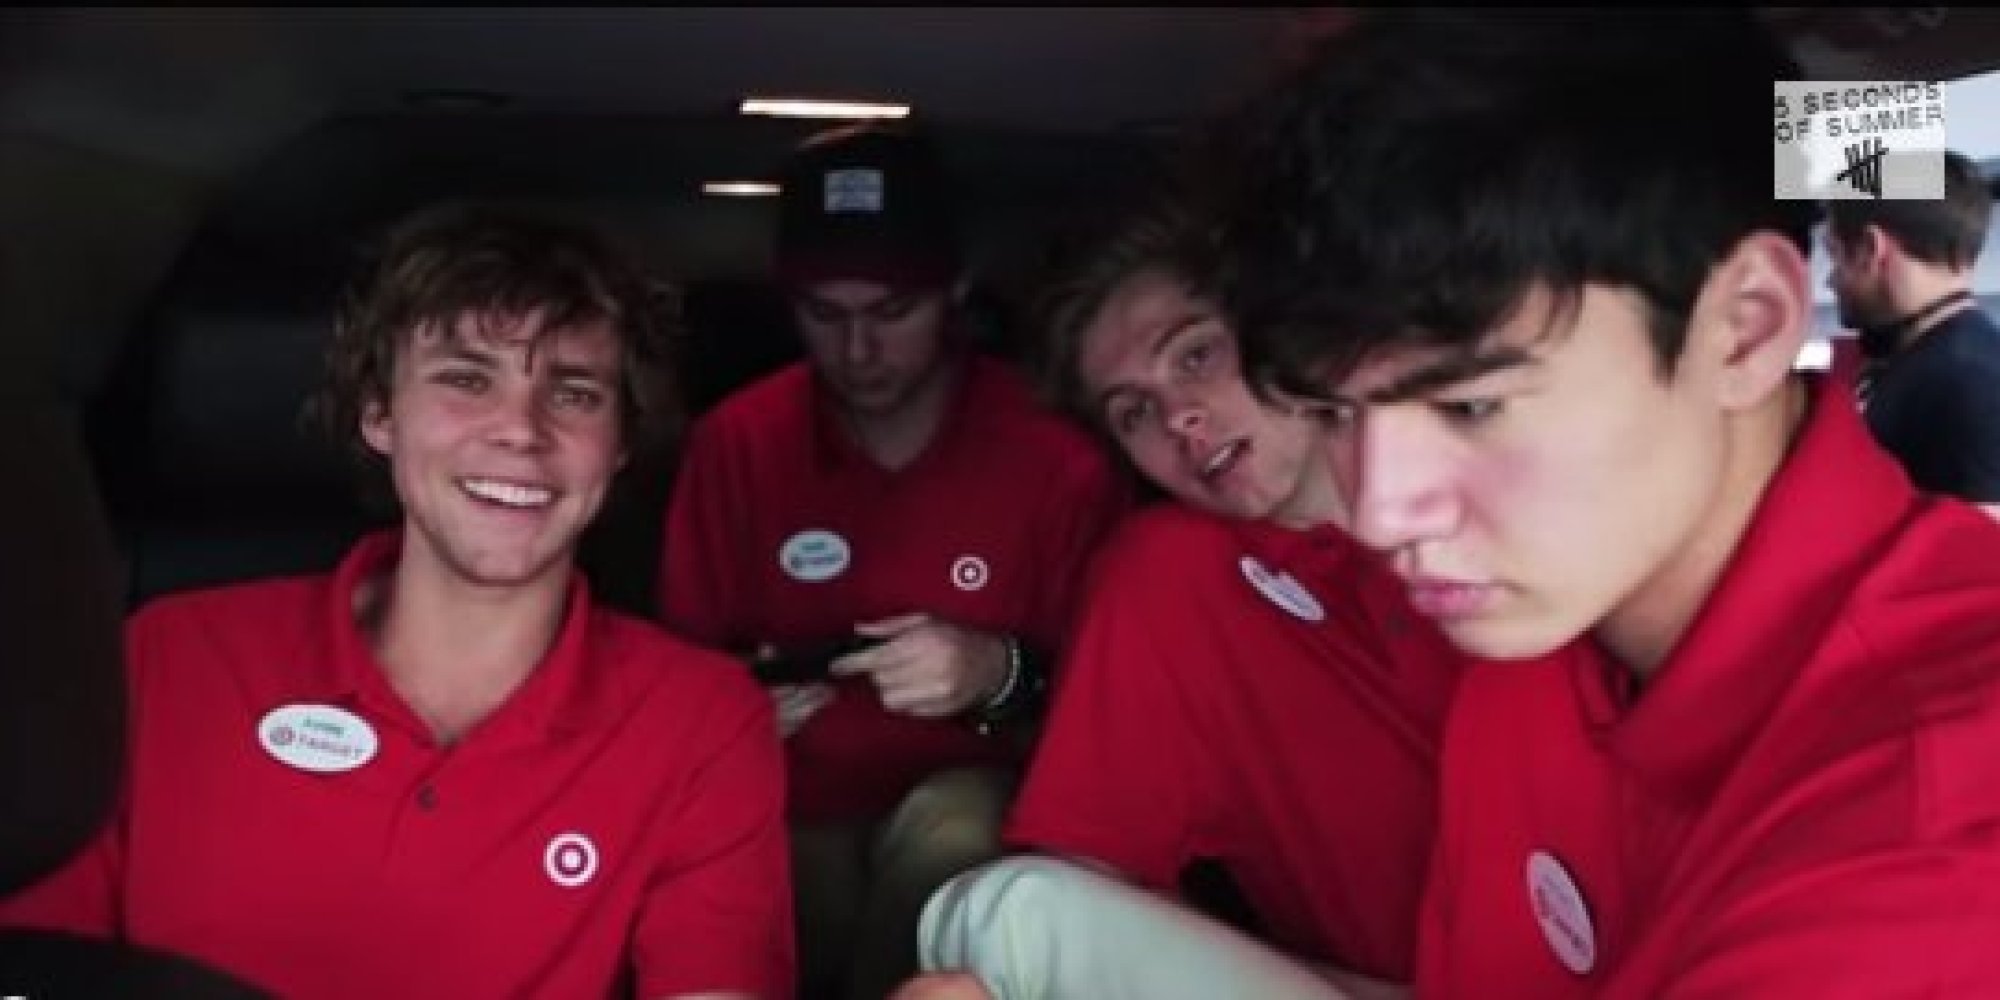 5 Seconds Of Summer Pose As Target Employees In Hilarious Prank Whats New